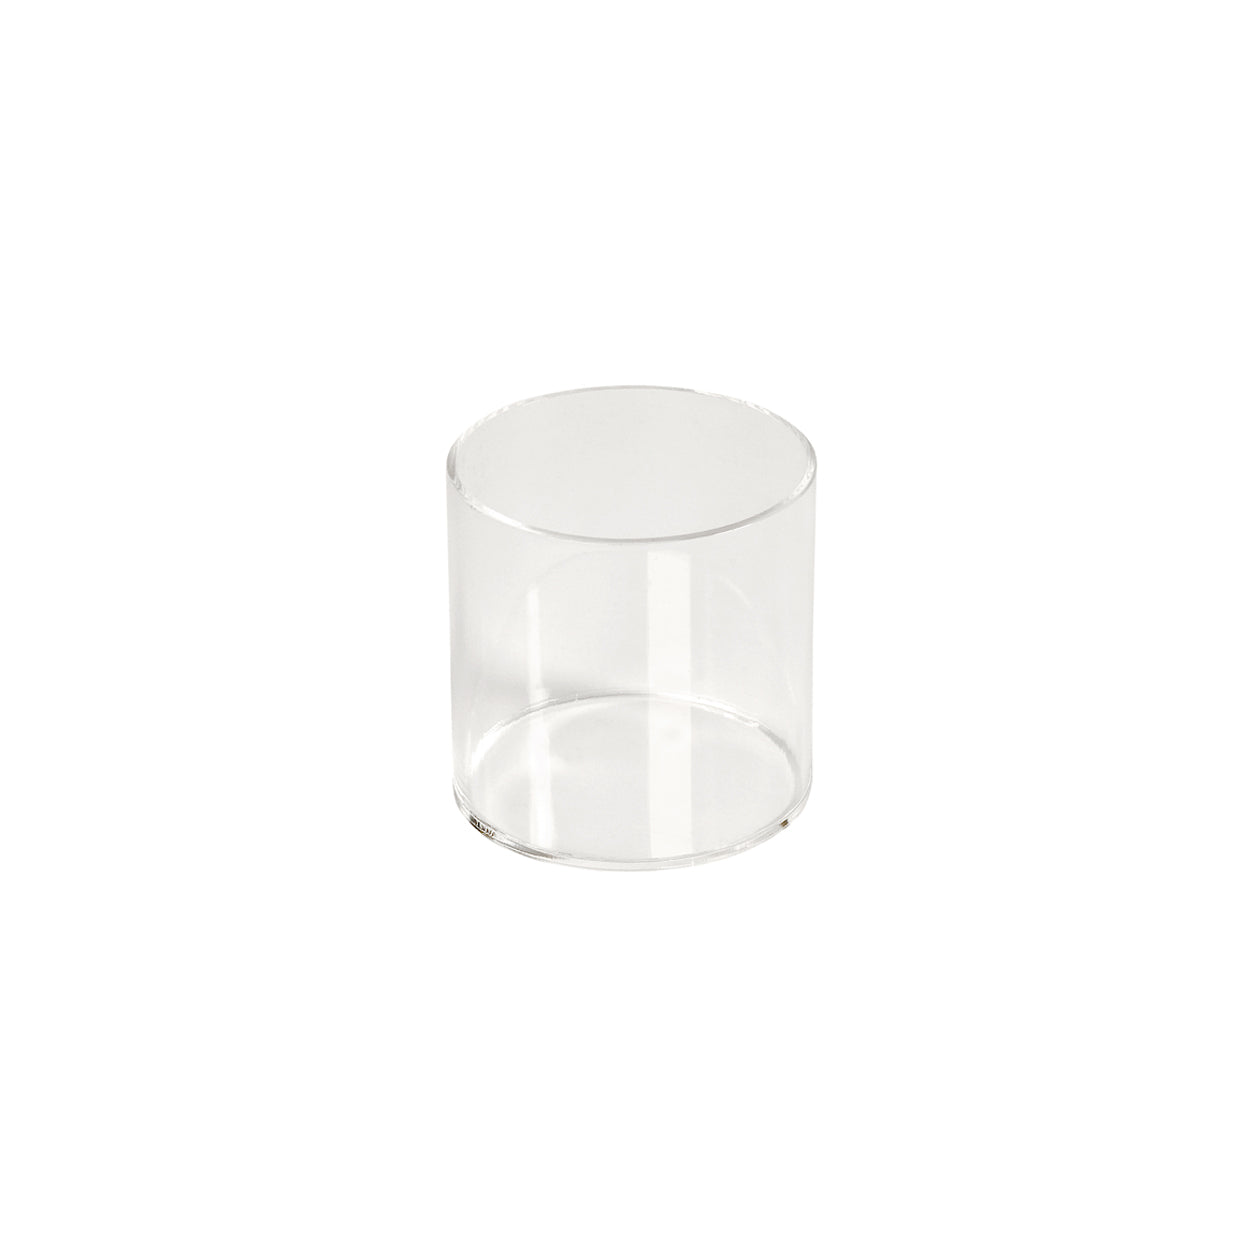 Acrylic Container Round 100 DIA x 100 mm H